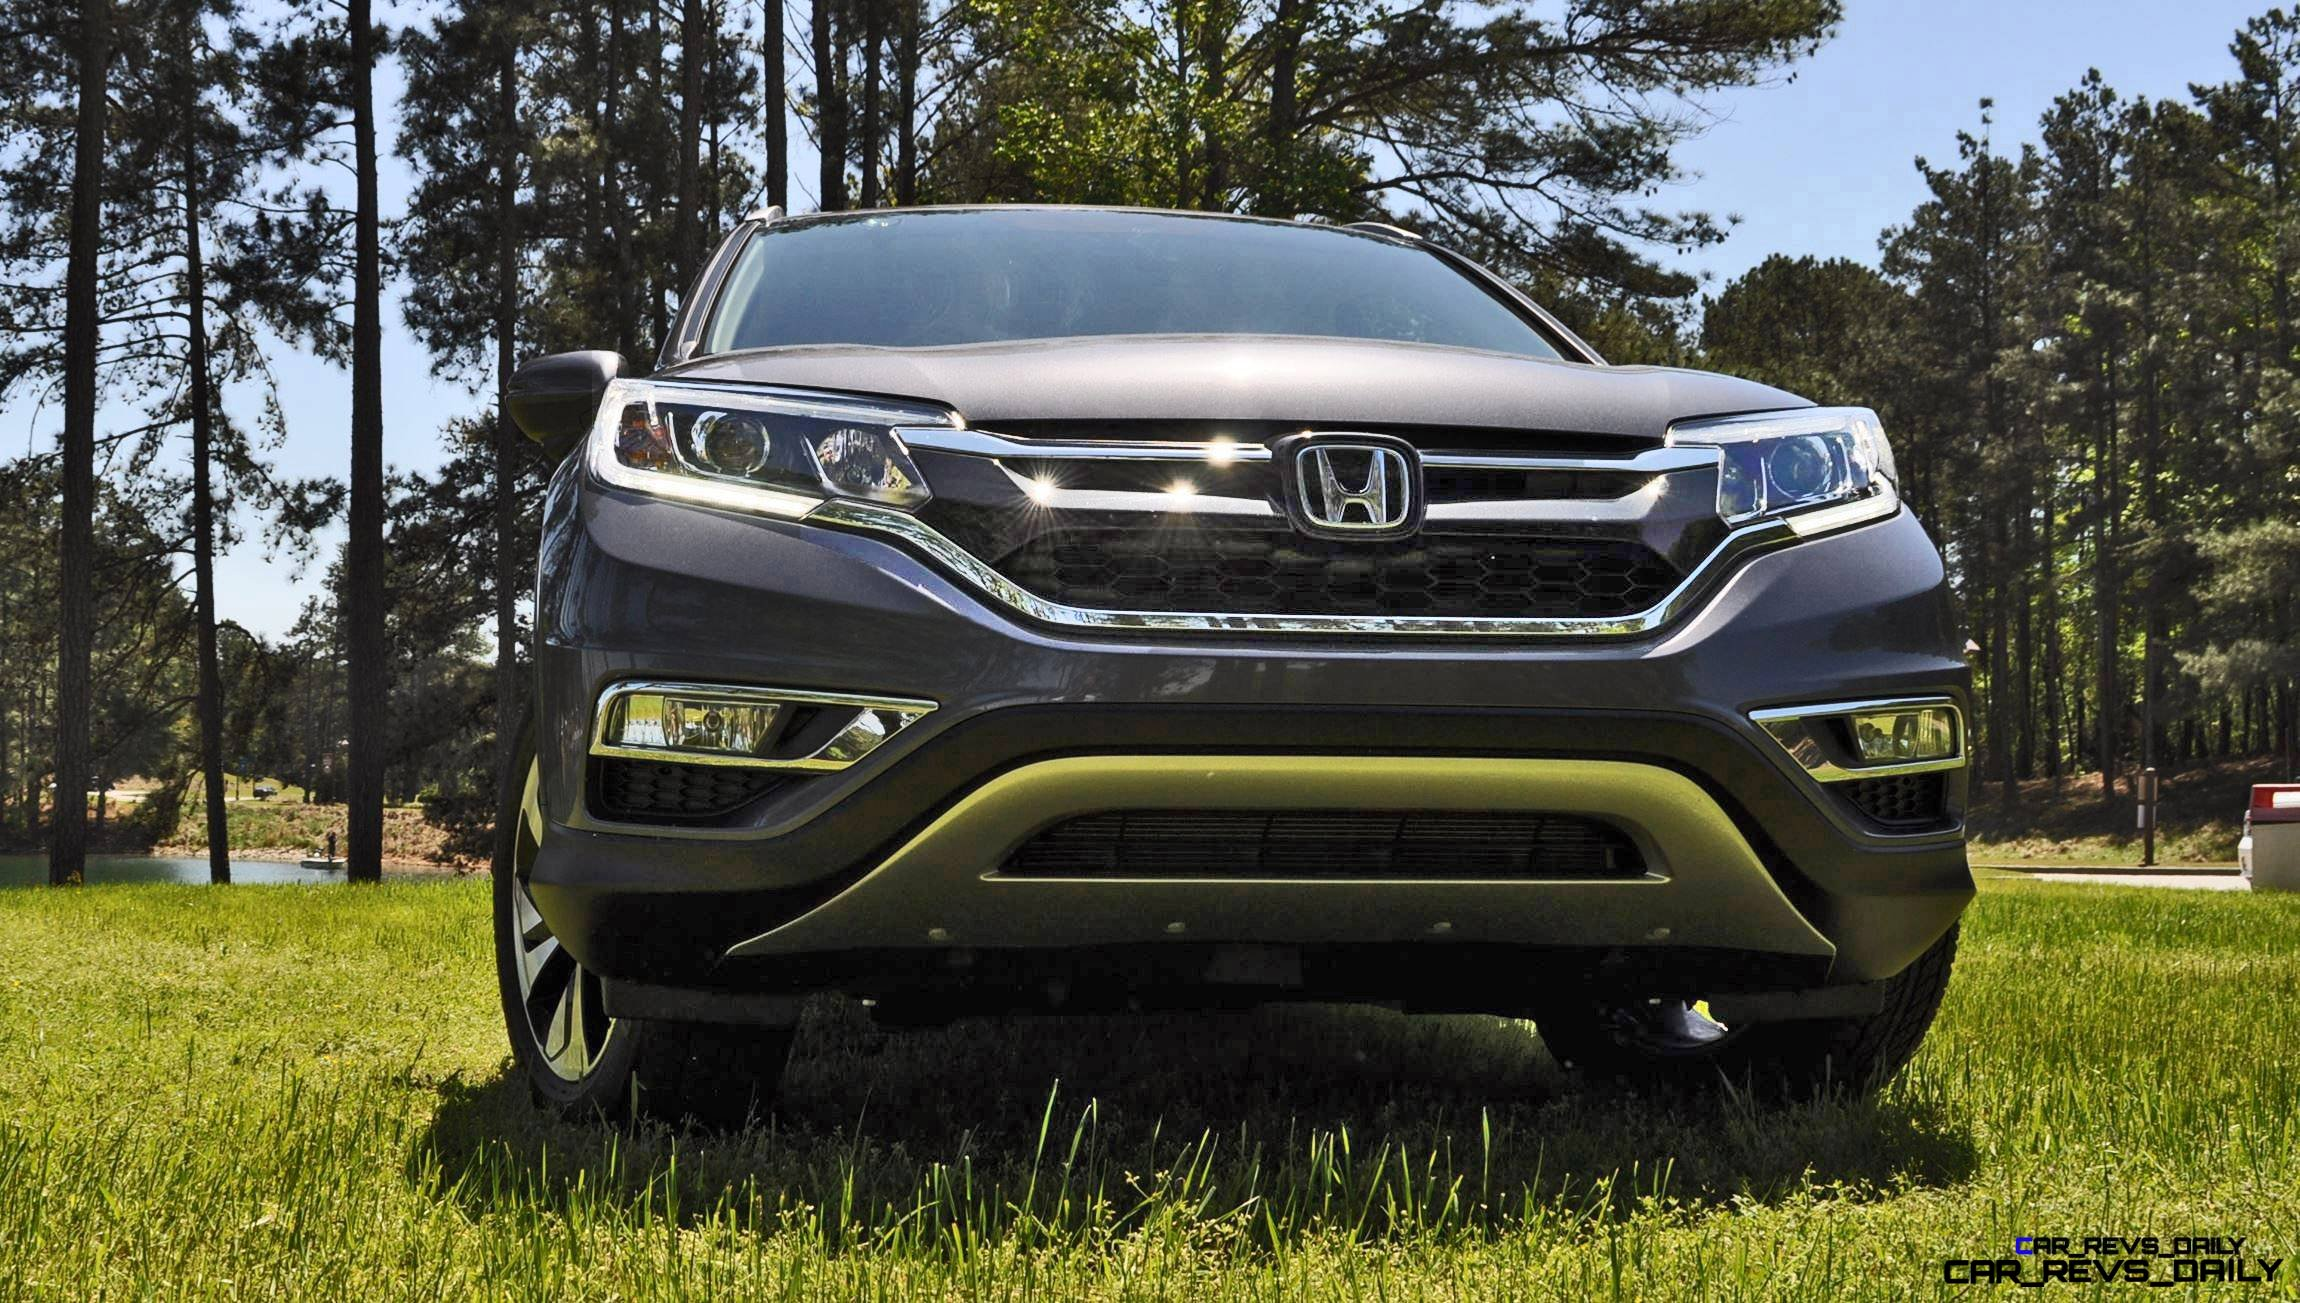 2015 Honda CR-V Touring AWD Review 56